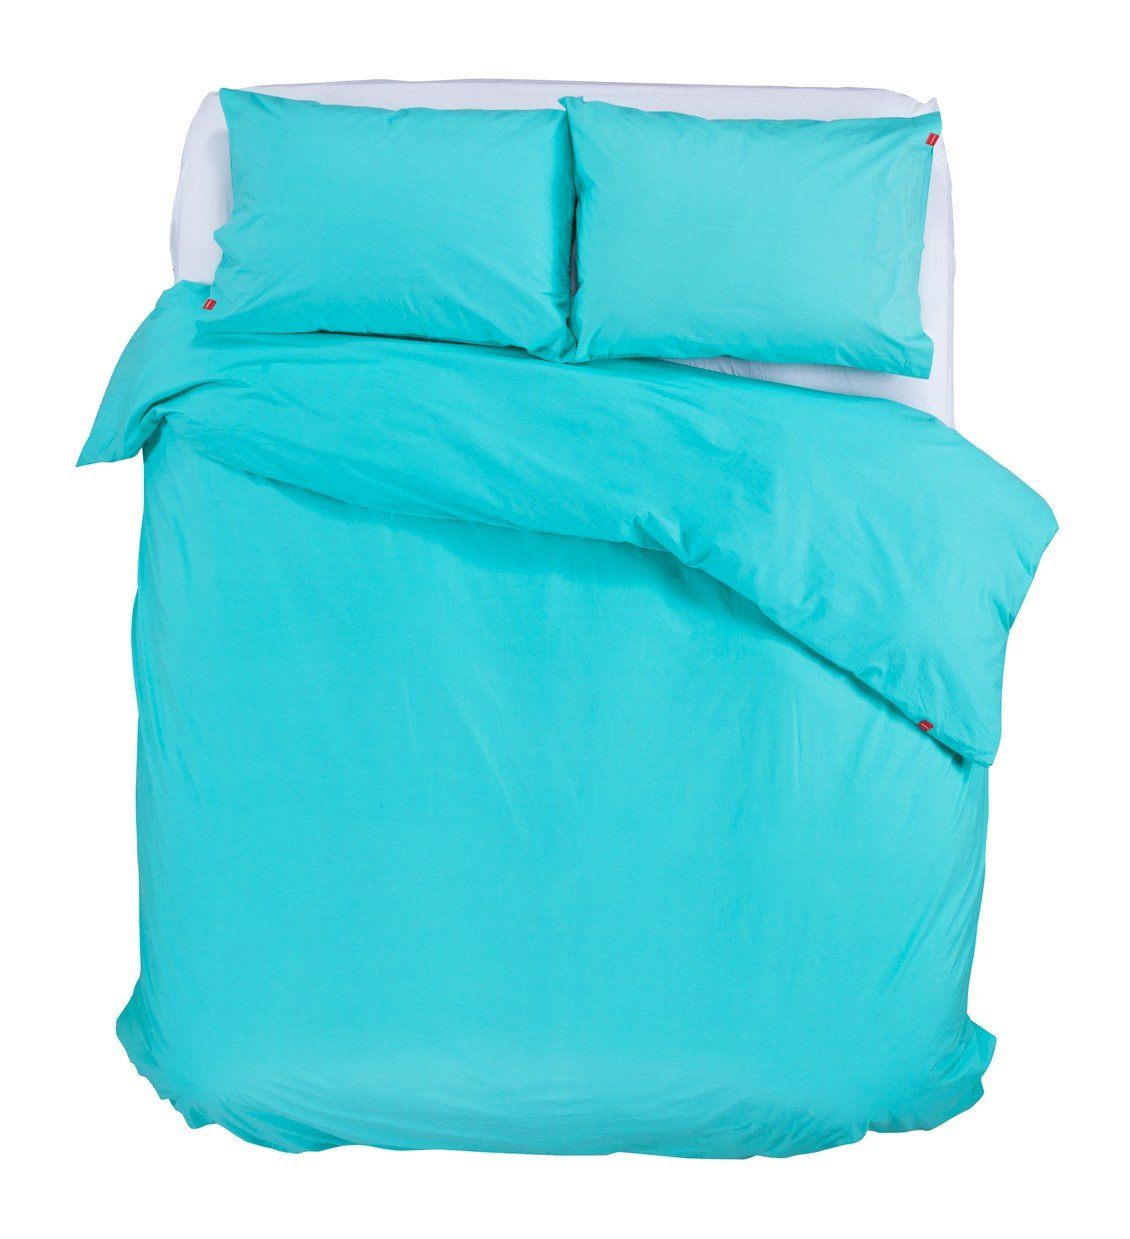 SWENYO Duvet Cover (Teal, Twin/Twin XL)